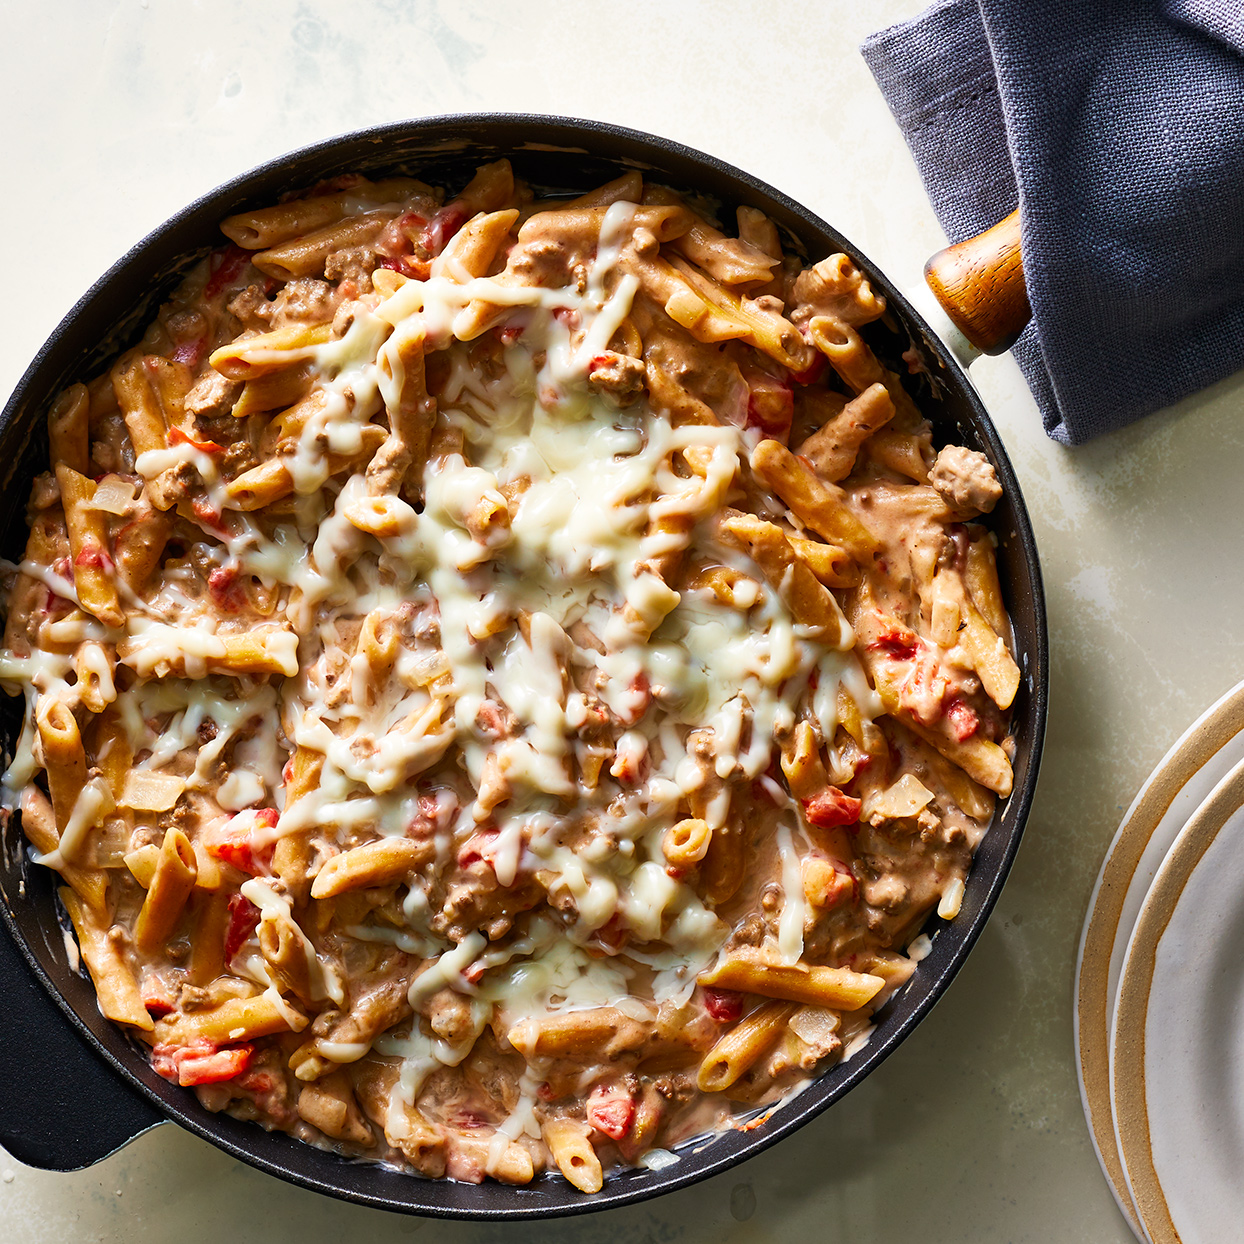 Pastitsio is a classic Greek baked pasta dish made with ground beef and bechamel. Our version has all the flavors and the comforting feel of the classic, but is made in one skillet (less cleanup!) and is healthier for you, using whole-grain pasta, lean meat and low-fat dairy.